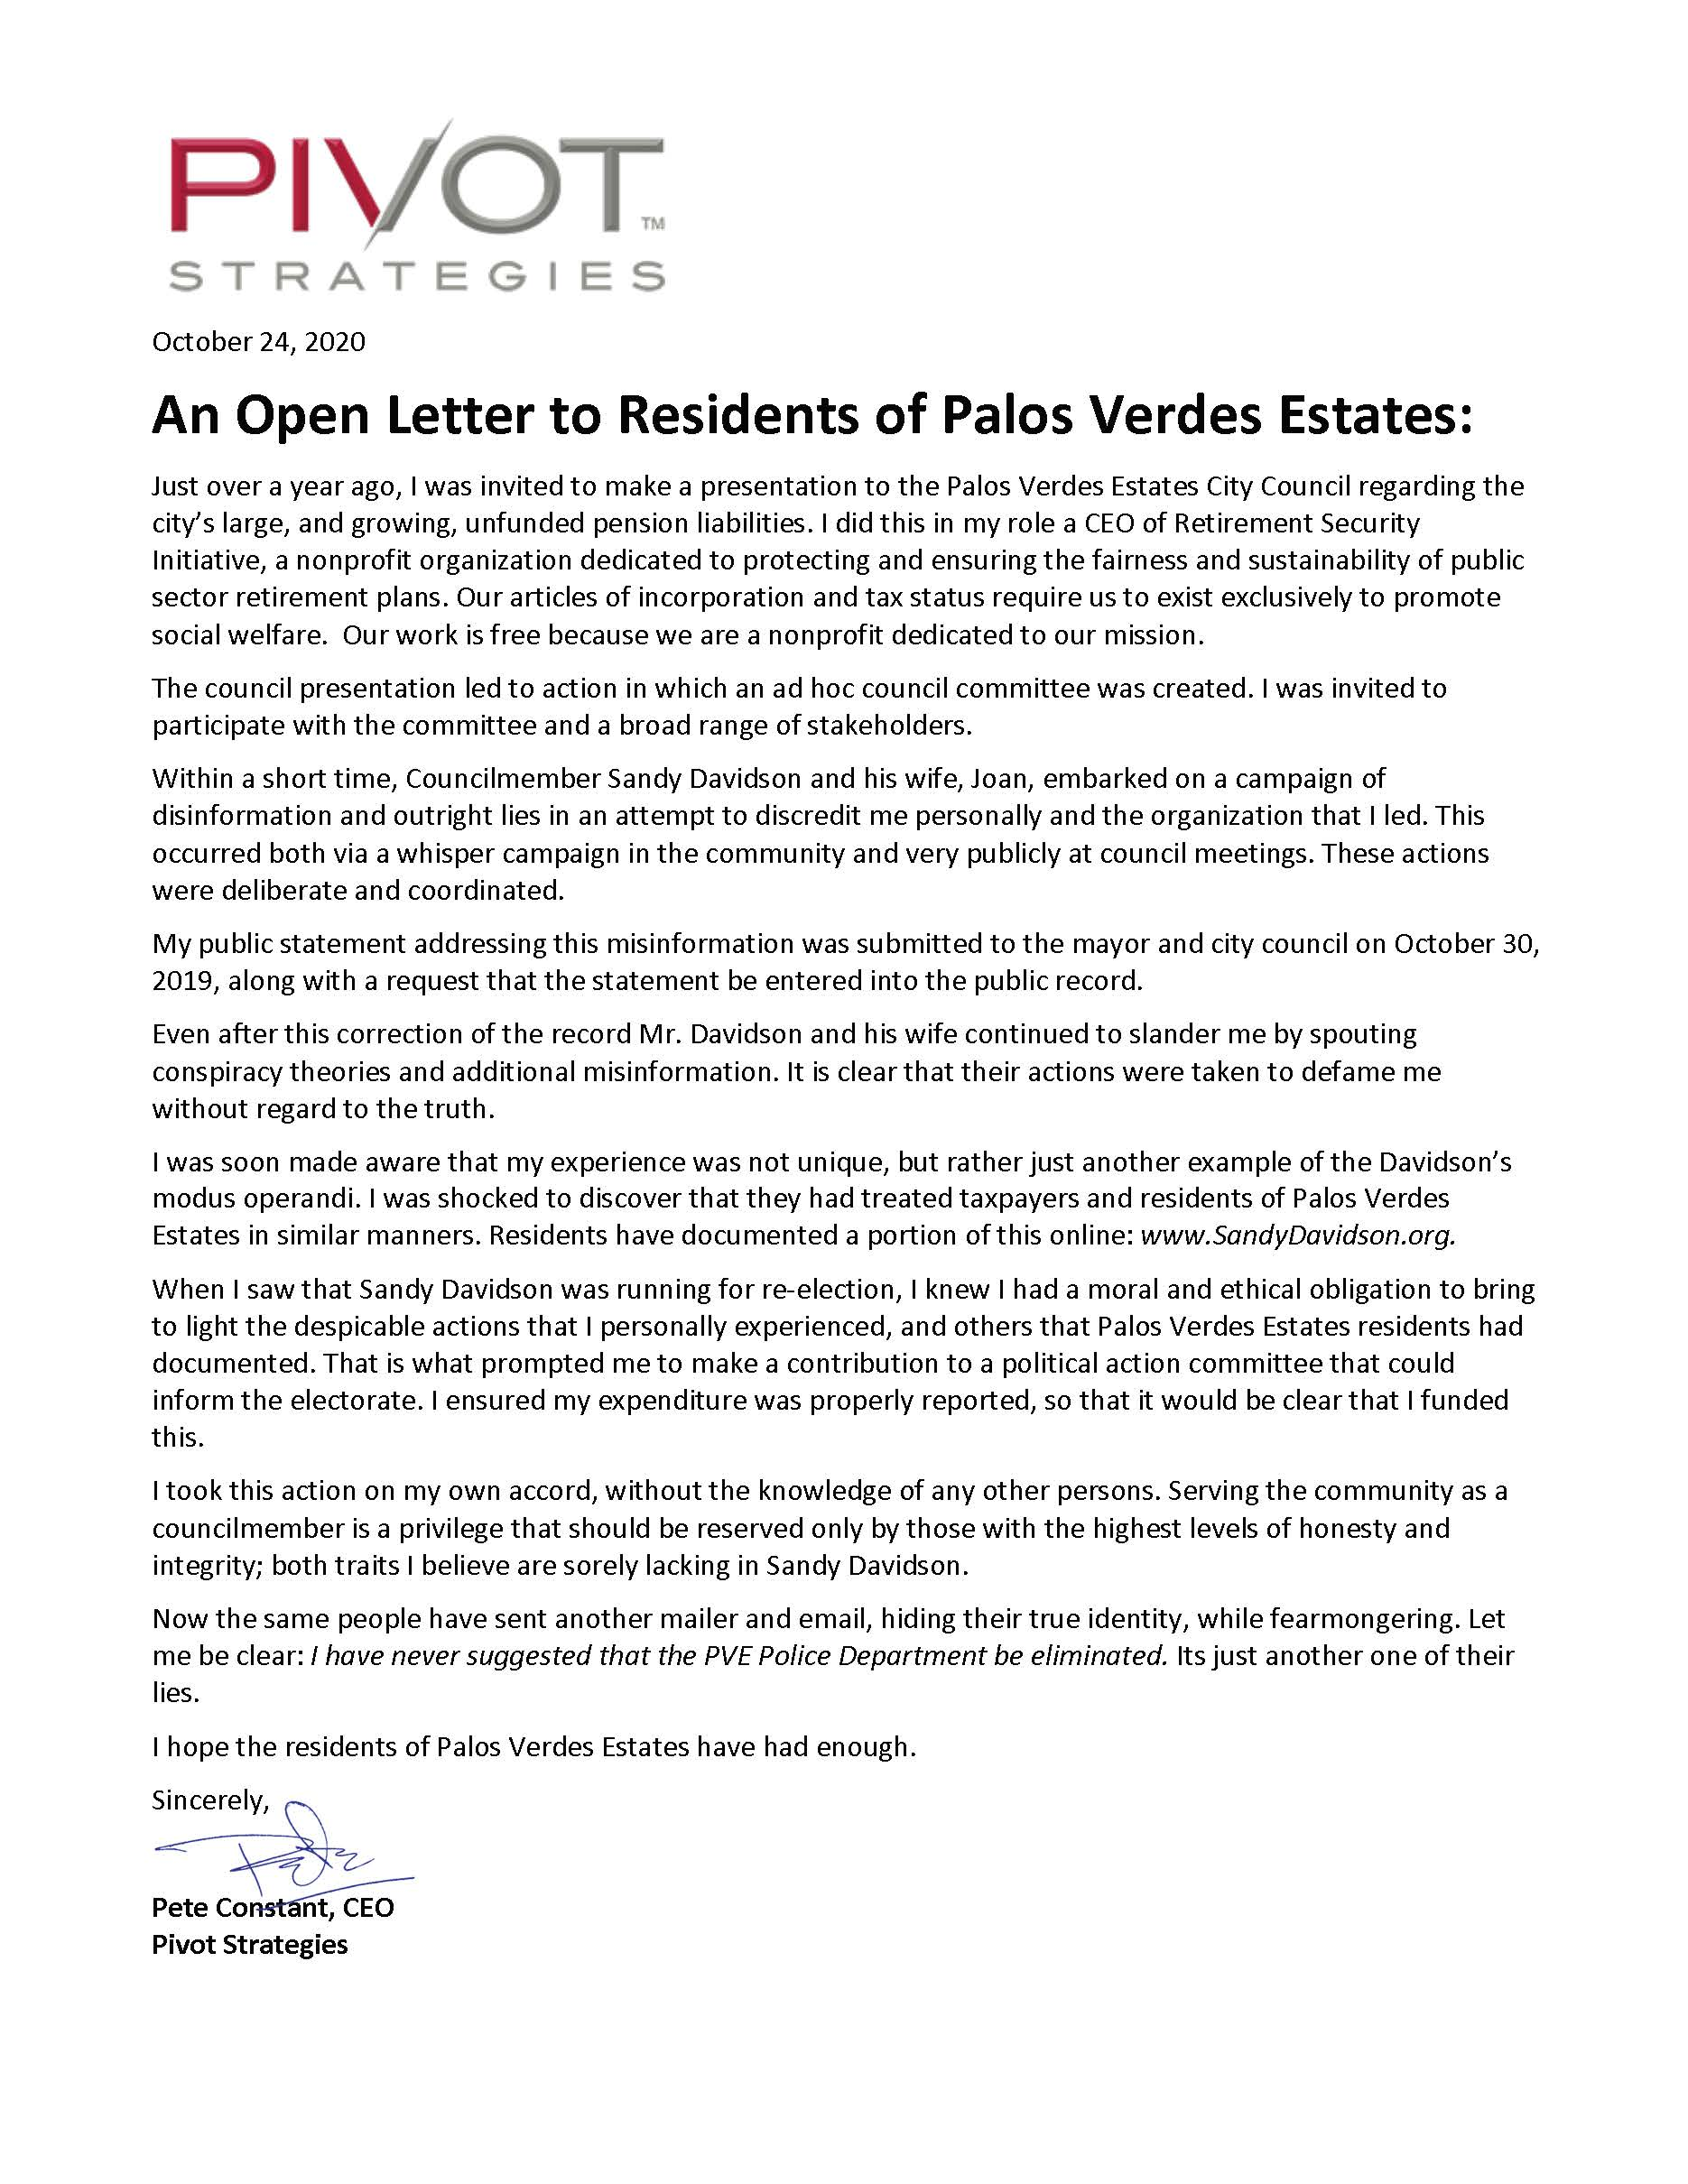 An Open Letter to PVE Residents